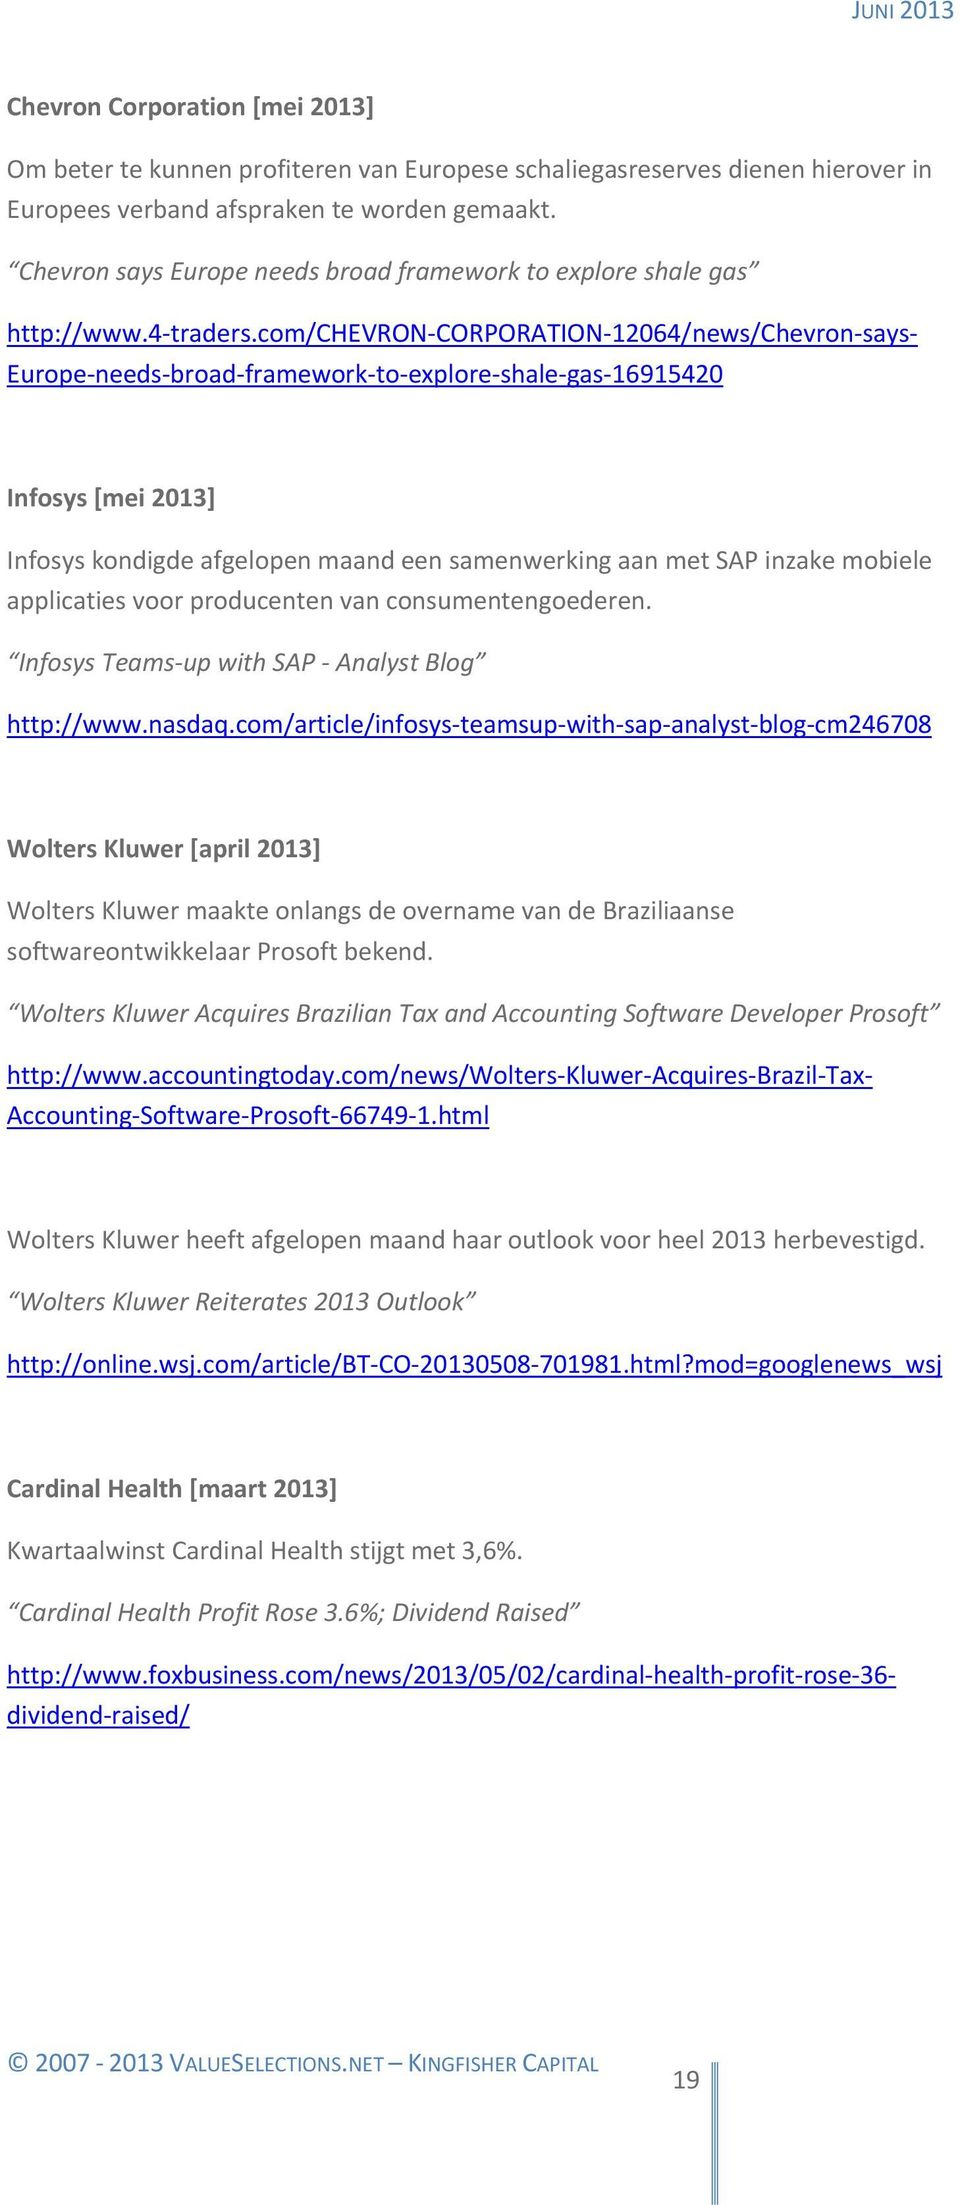 Wolters Kluwer Reiterates 2013 Outlook http://online.wsj.com/article/bt-co-20130508-701981.html?